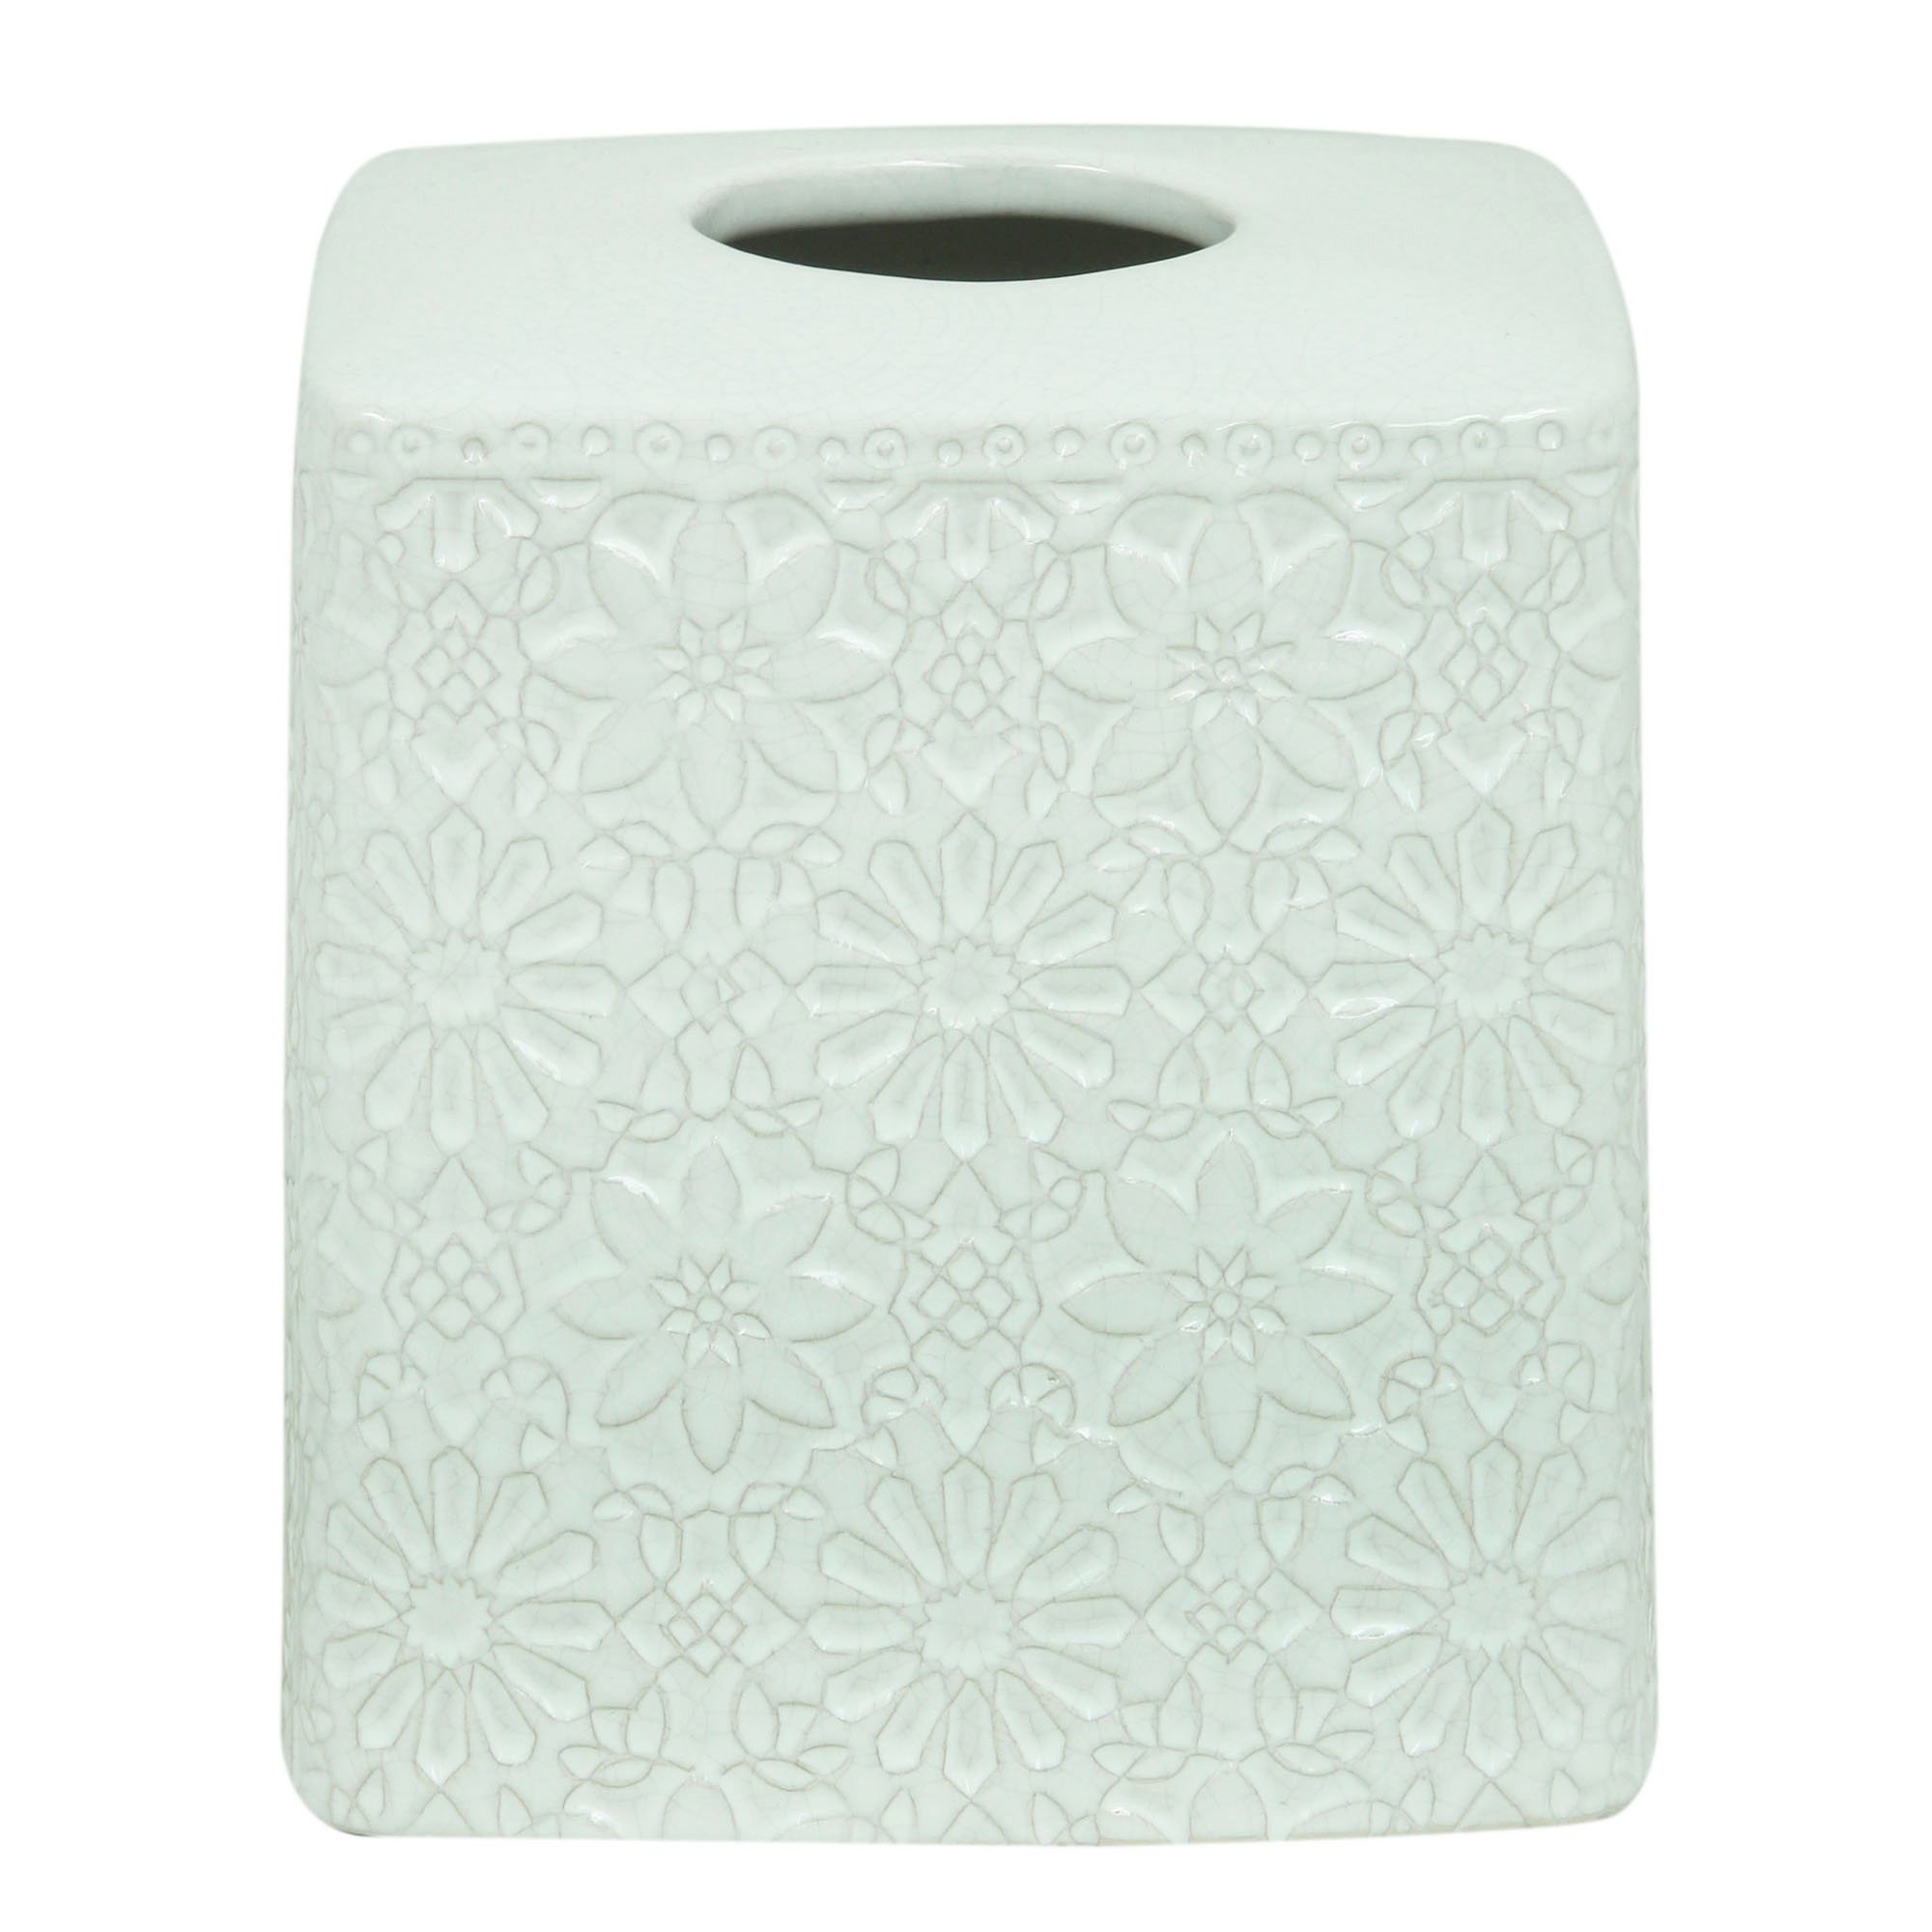 Bacova Guild Jessica Simpson Tissue Cube, Bonito White by Bacova Guild